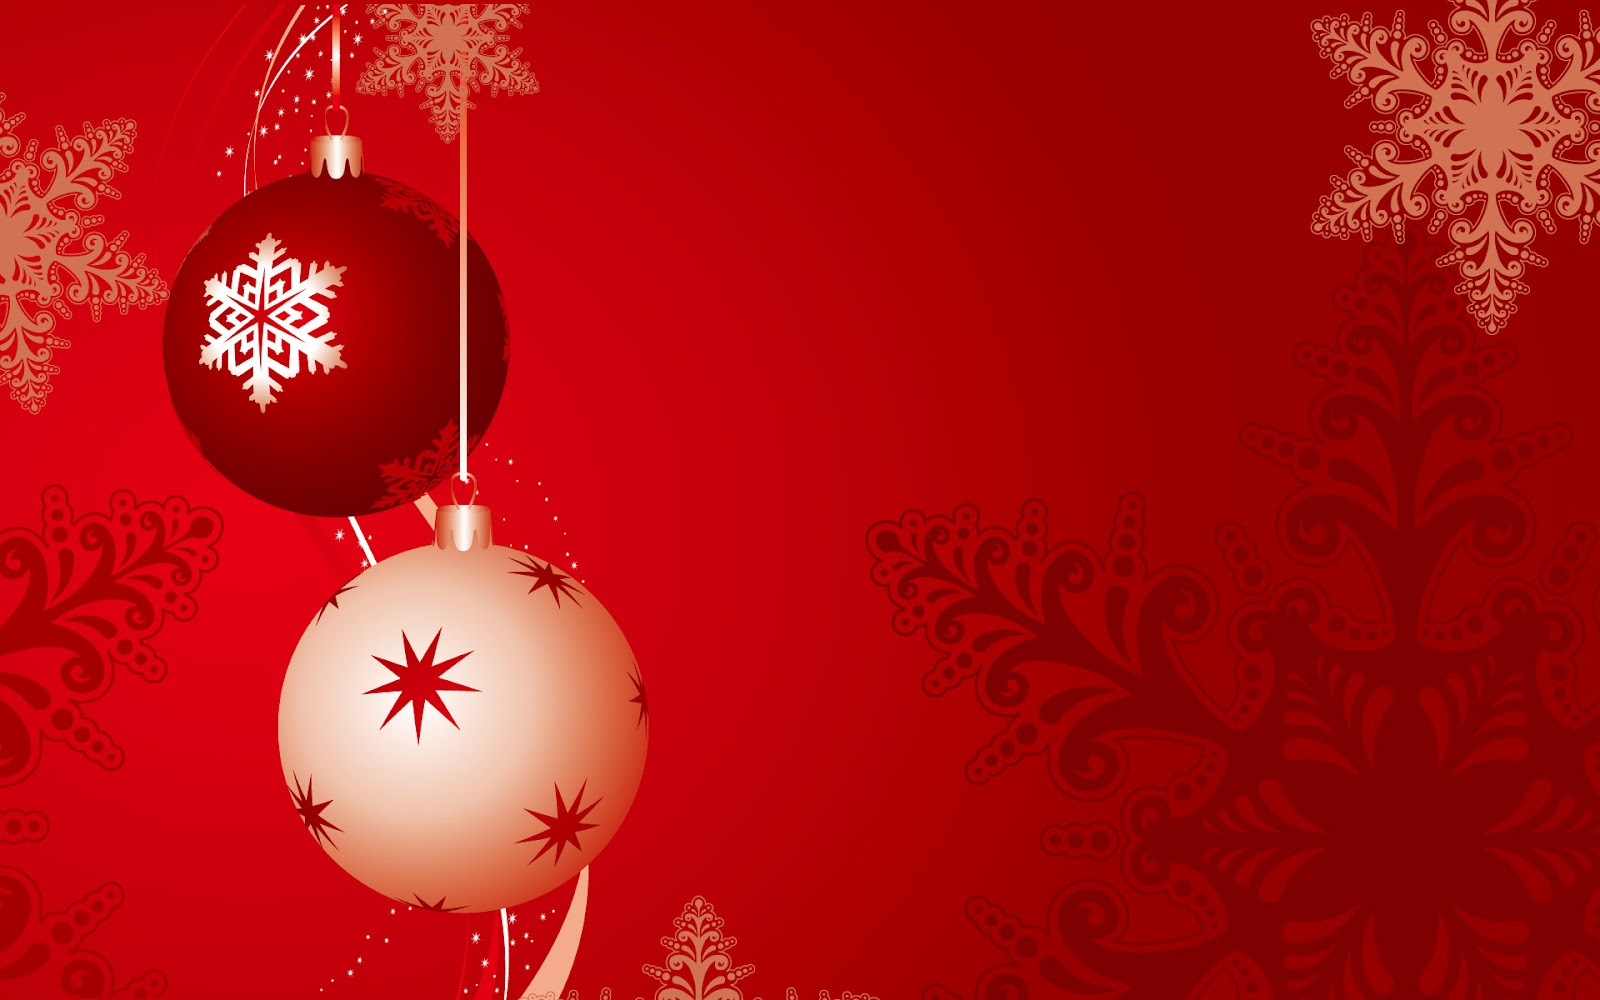 Love Wallpaper: Merry christmas 2014 - 2015 Wallpapers Backgrounds cards